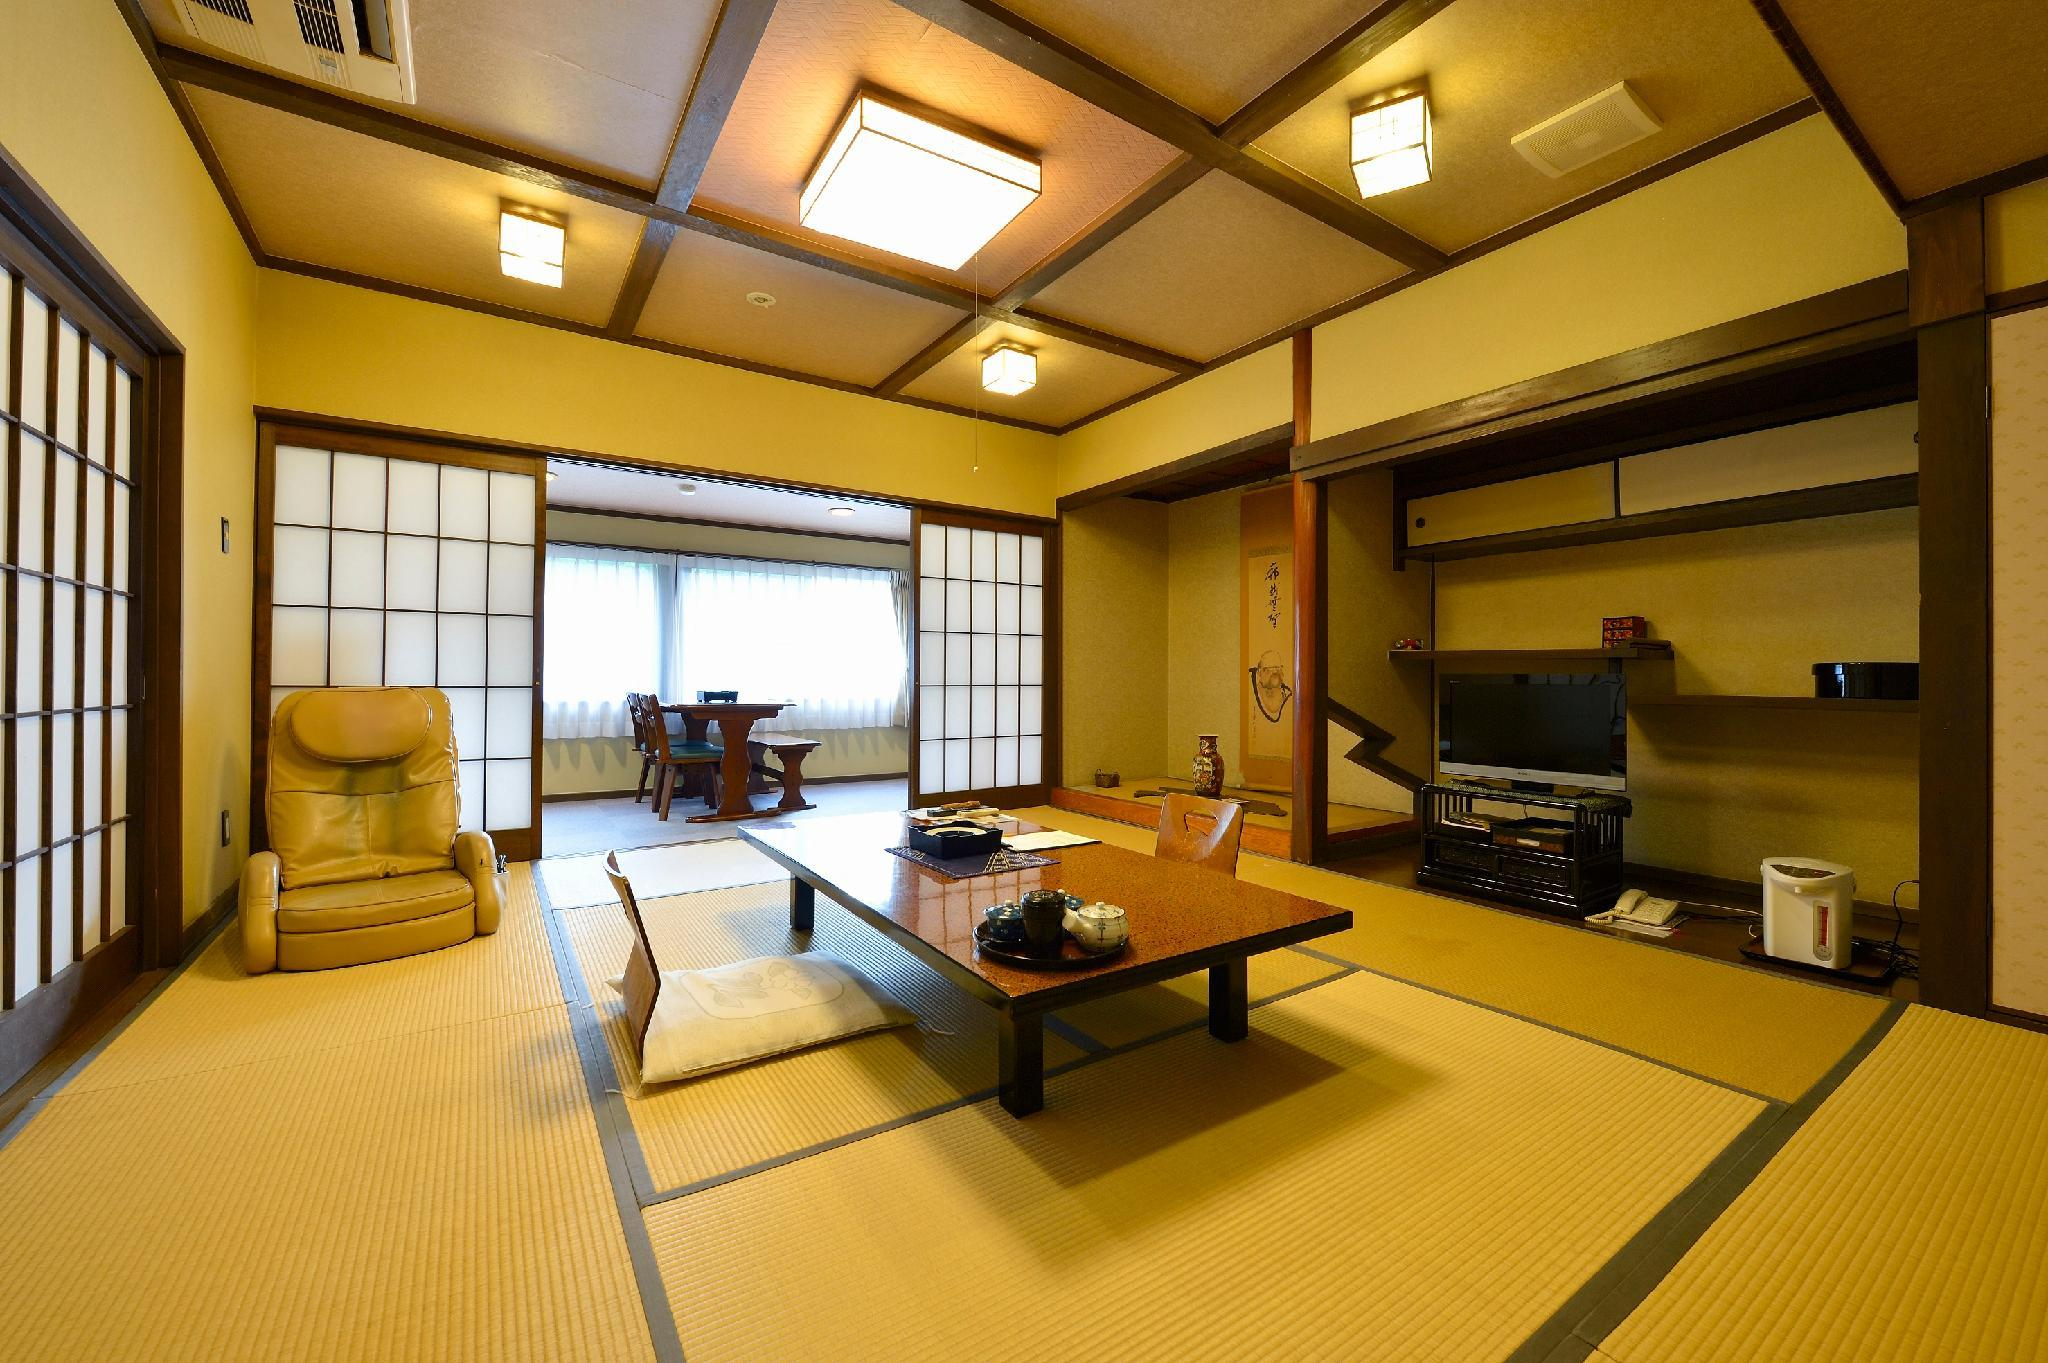 和室 スタンダード(5名) (Standard Japanese Style Room for 5 People)